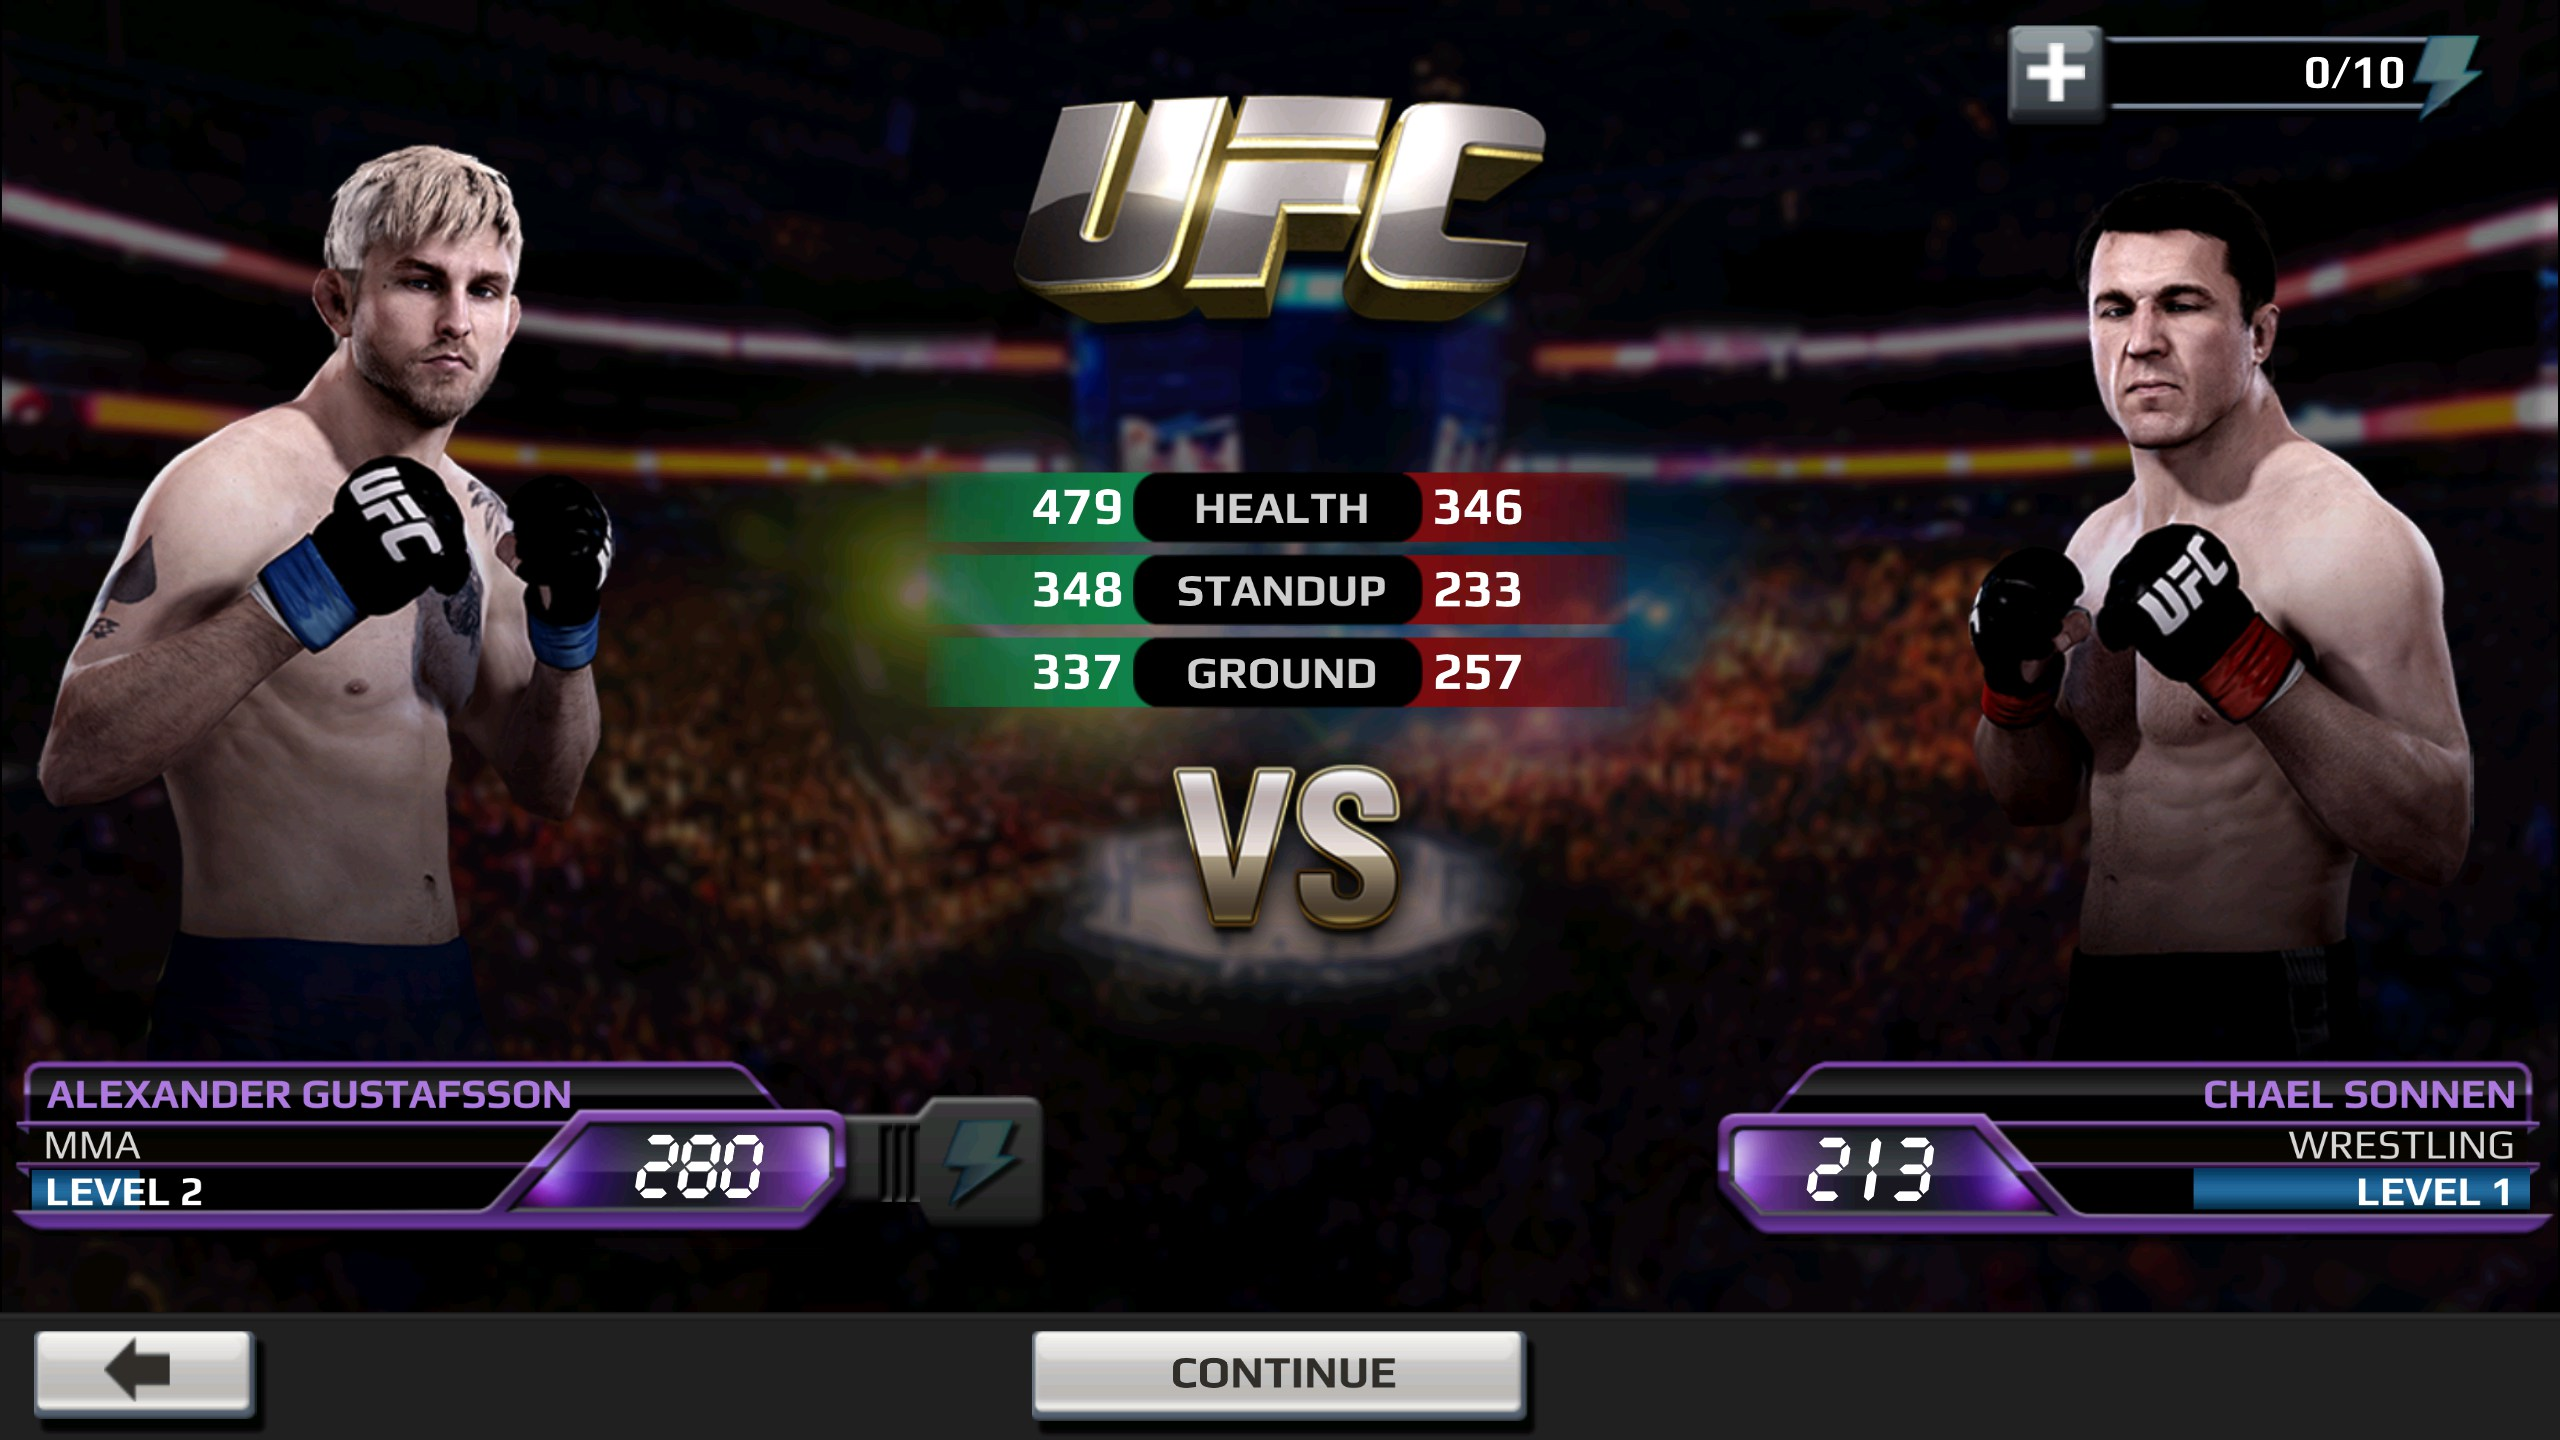 ea sports64 ufc - games for android - free .